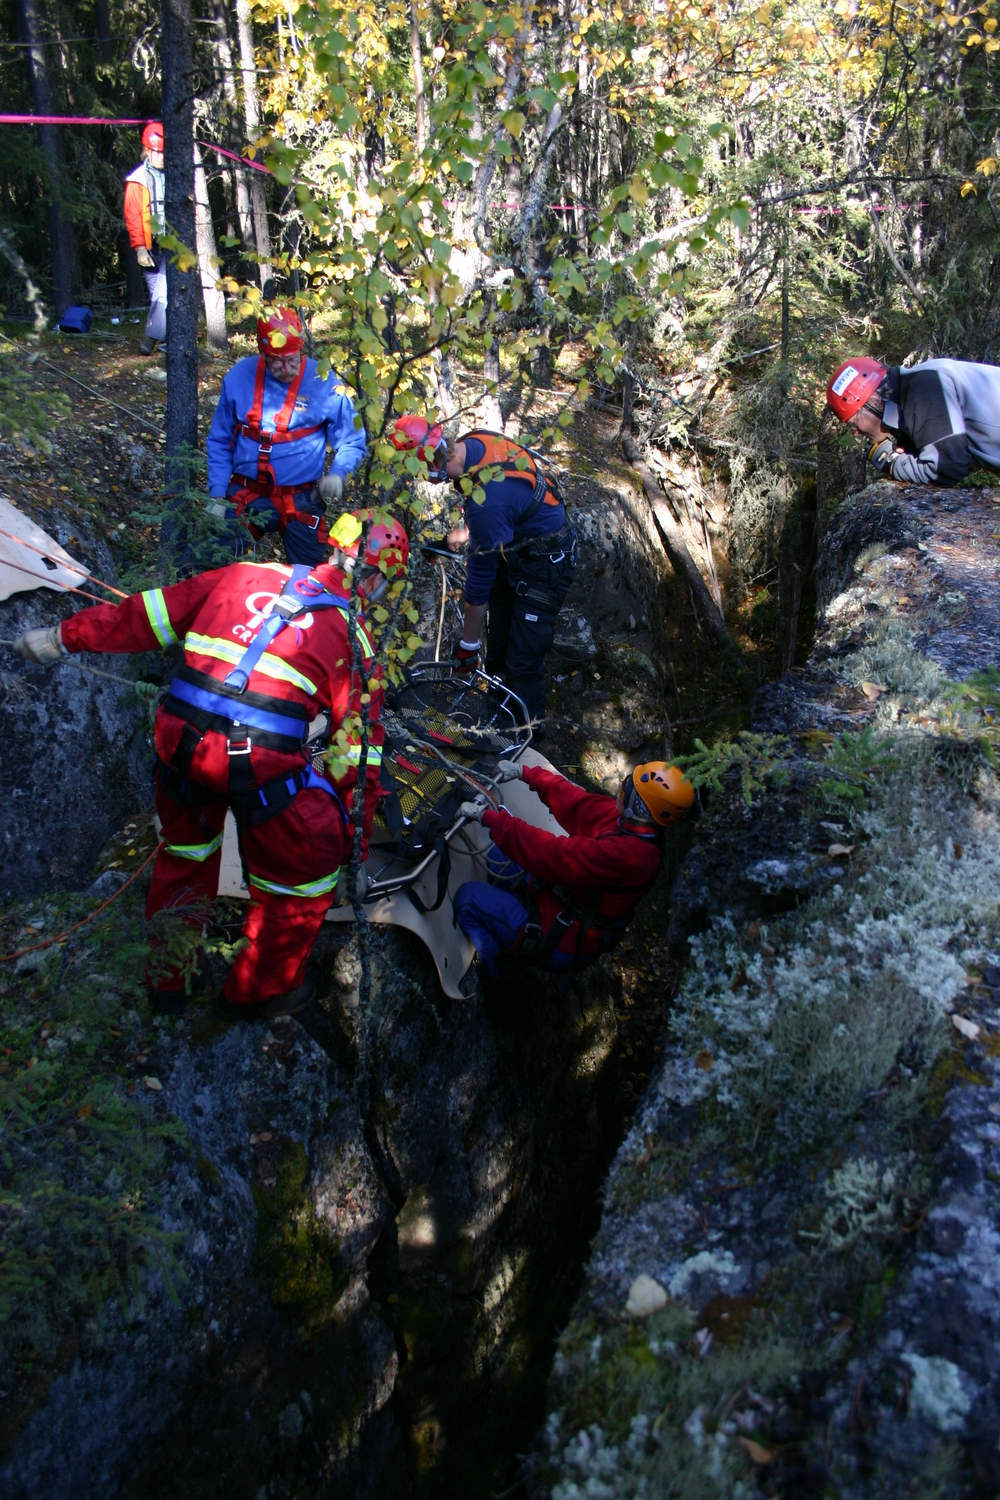 Rope rescue team members practice rescuing from a crevice.